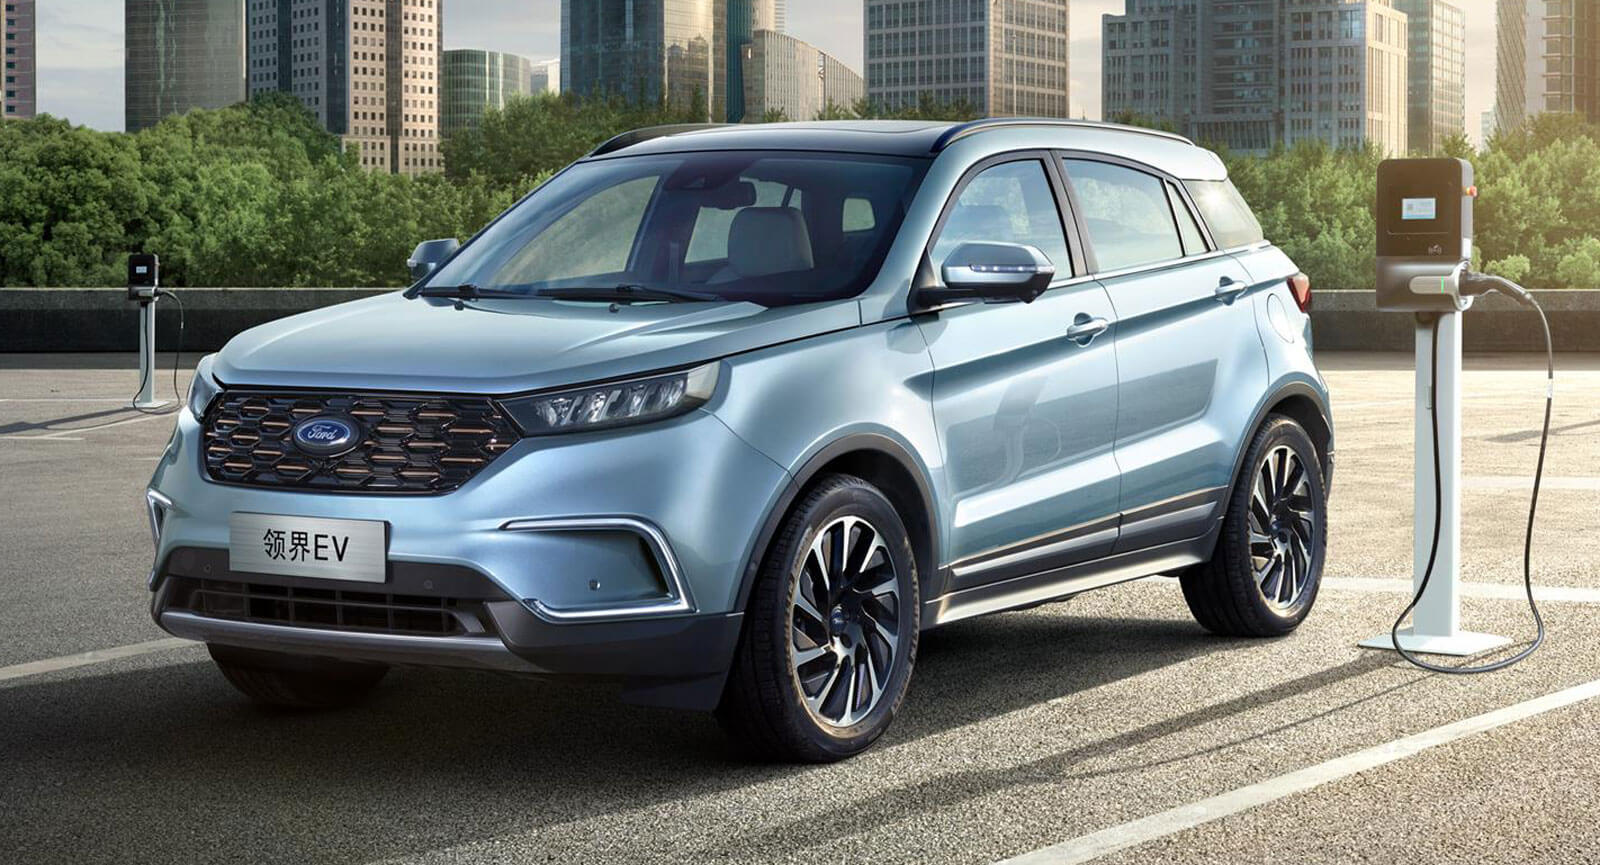 Ford has announced the 2021-model-year version of its battery-powered Territory crossover for China. The update brings along a battery size boost from 49.14 to 60.4 kilowatt-hours, extending NEDC-rated range from 360 to 435 kilometers.